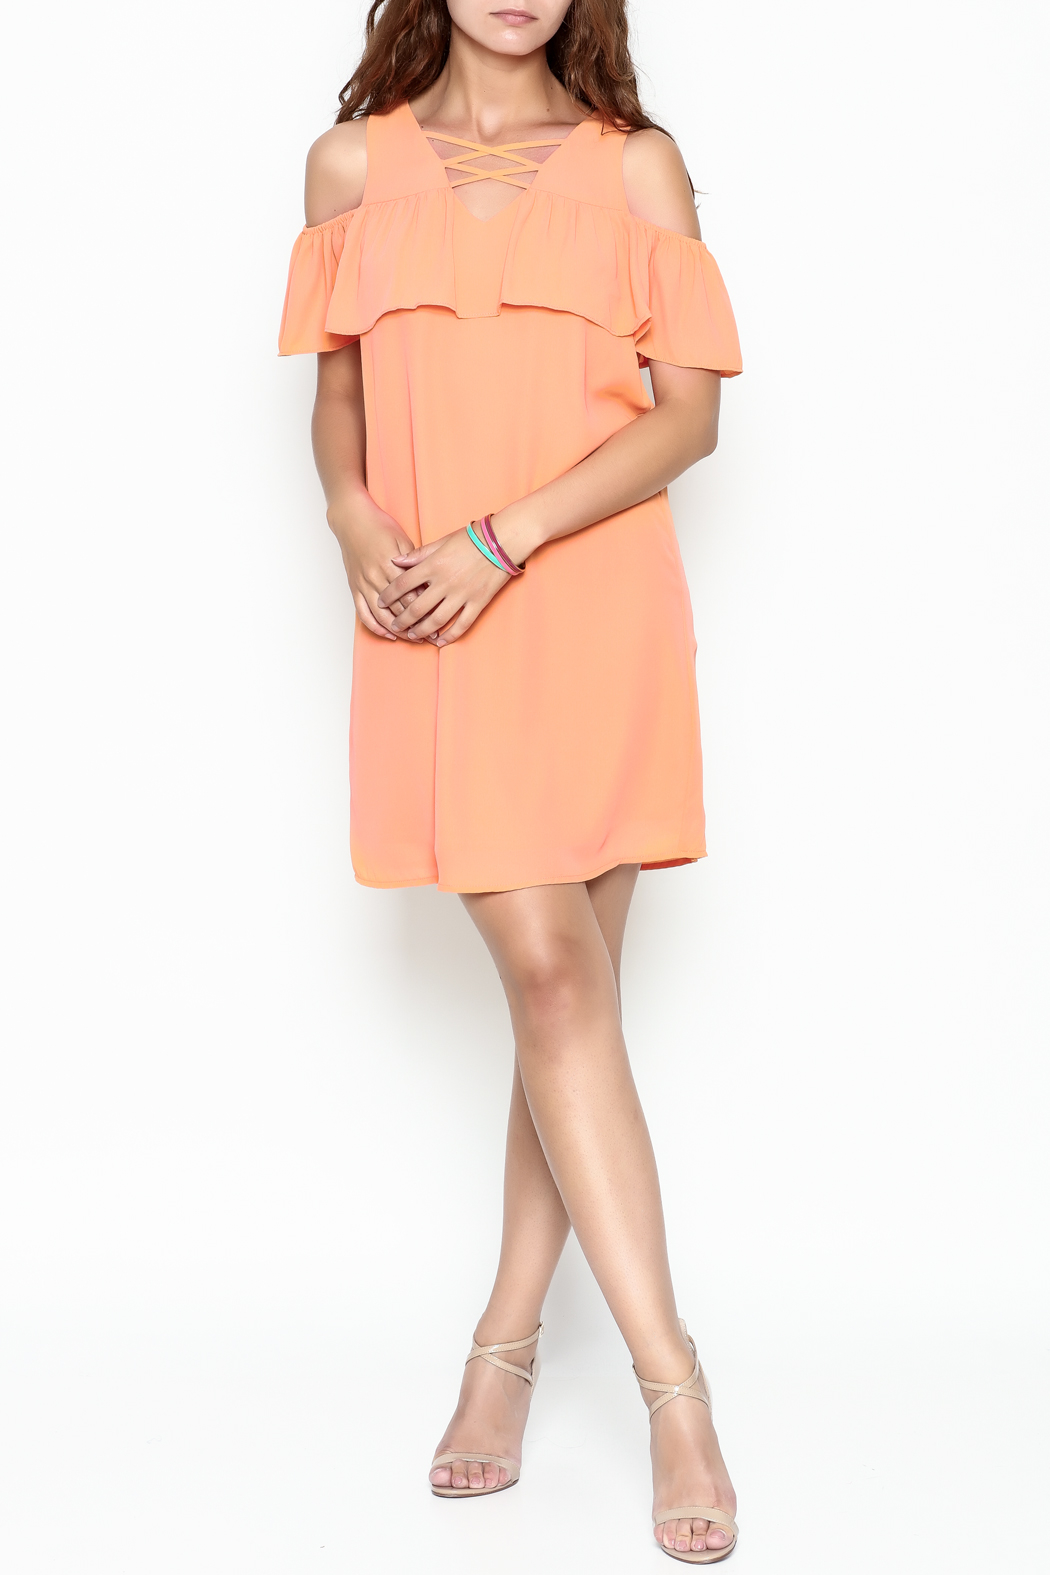 Skies Are Blue Tangerine Dreams Dress - Side Cropped Image